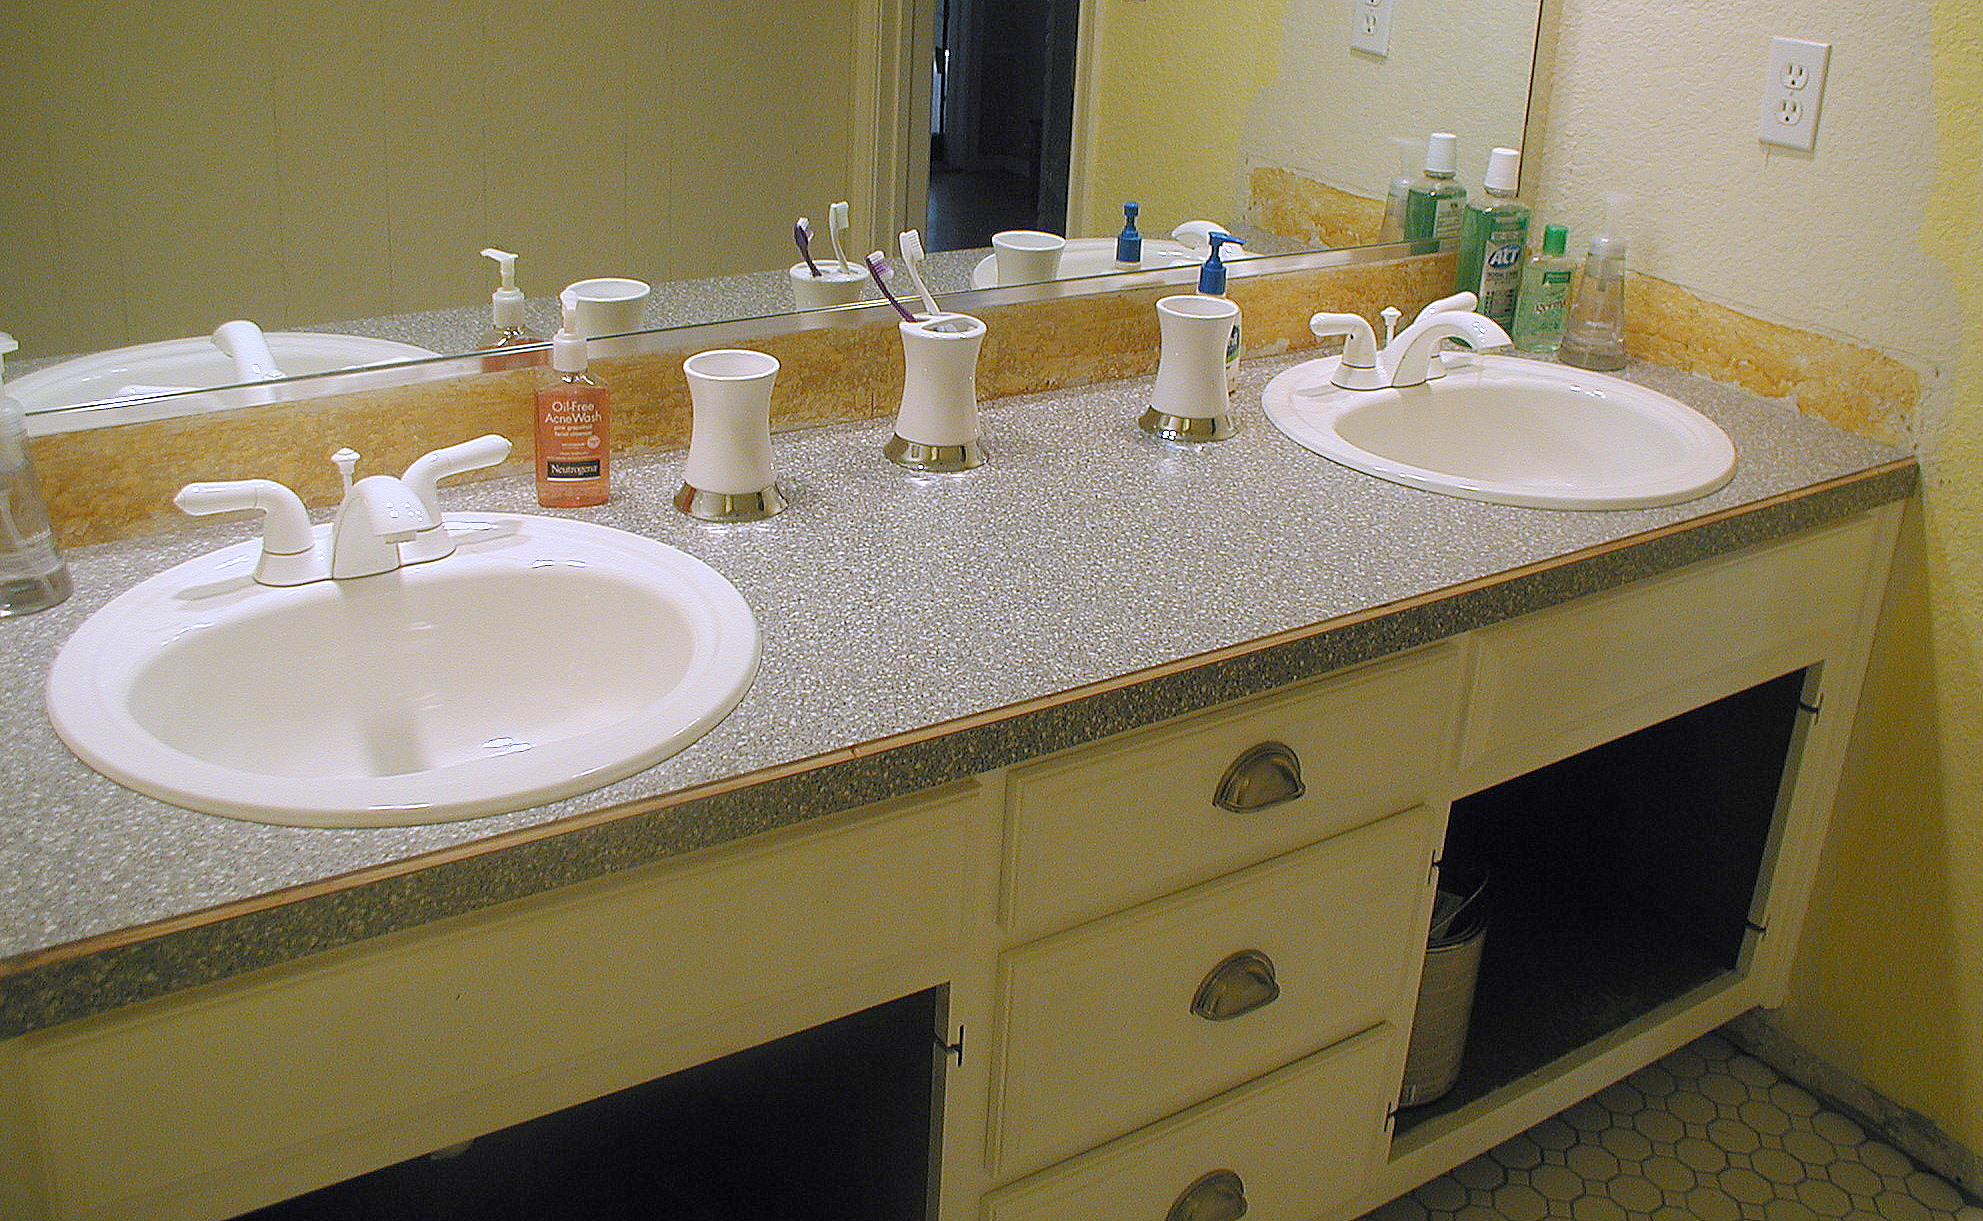 11 Easy Ways To Make Your Rental Bathroom Look Stylish: Project: Bathroom Vanity With Laminate Over Laminate